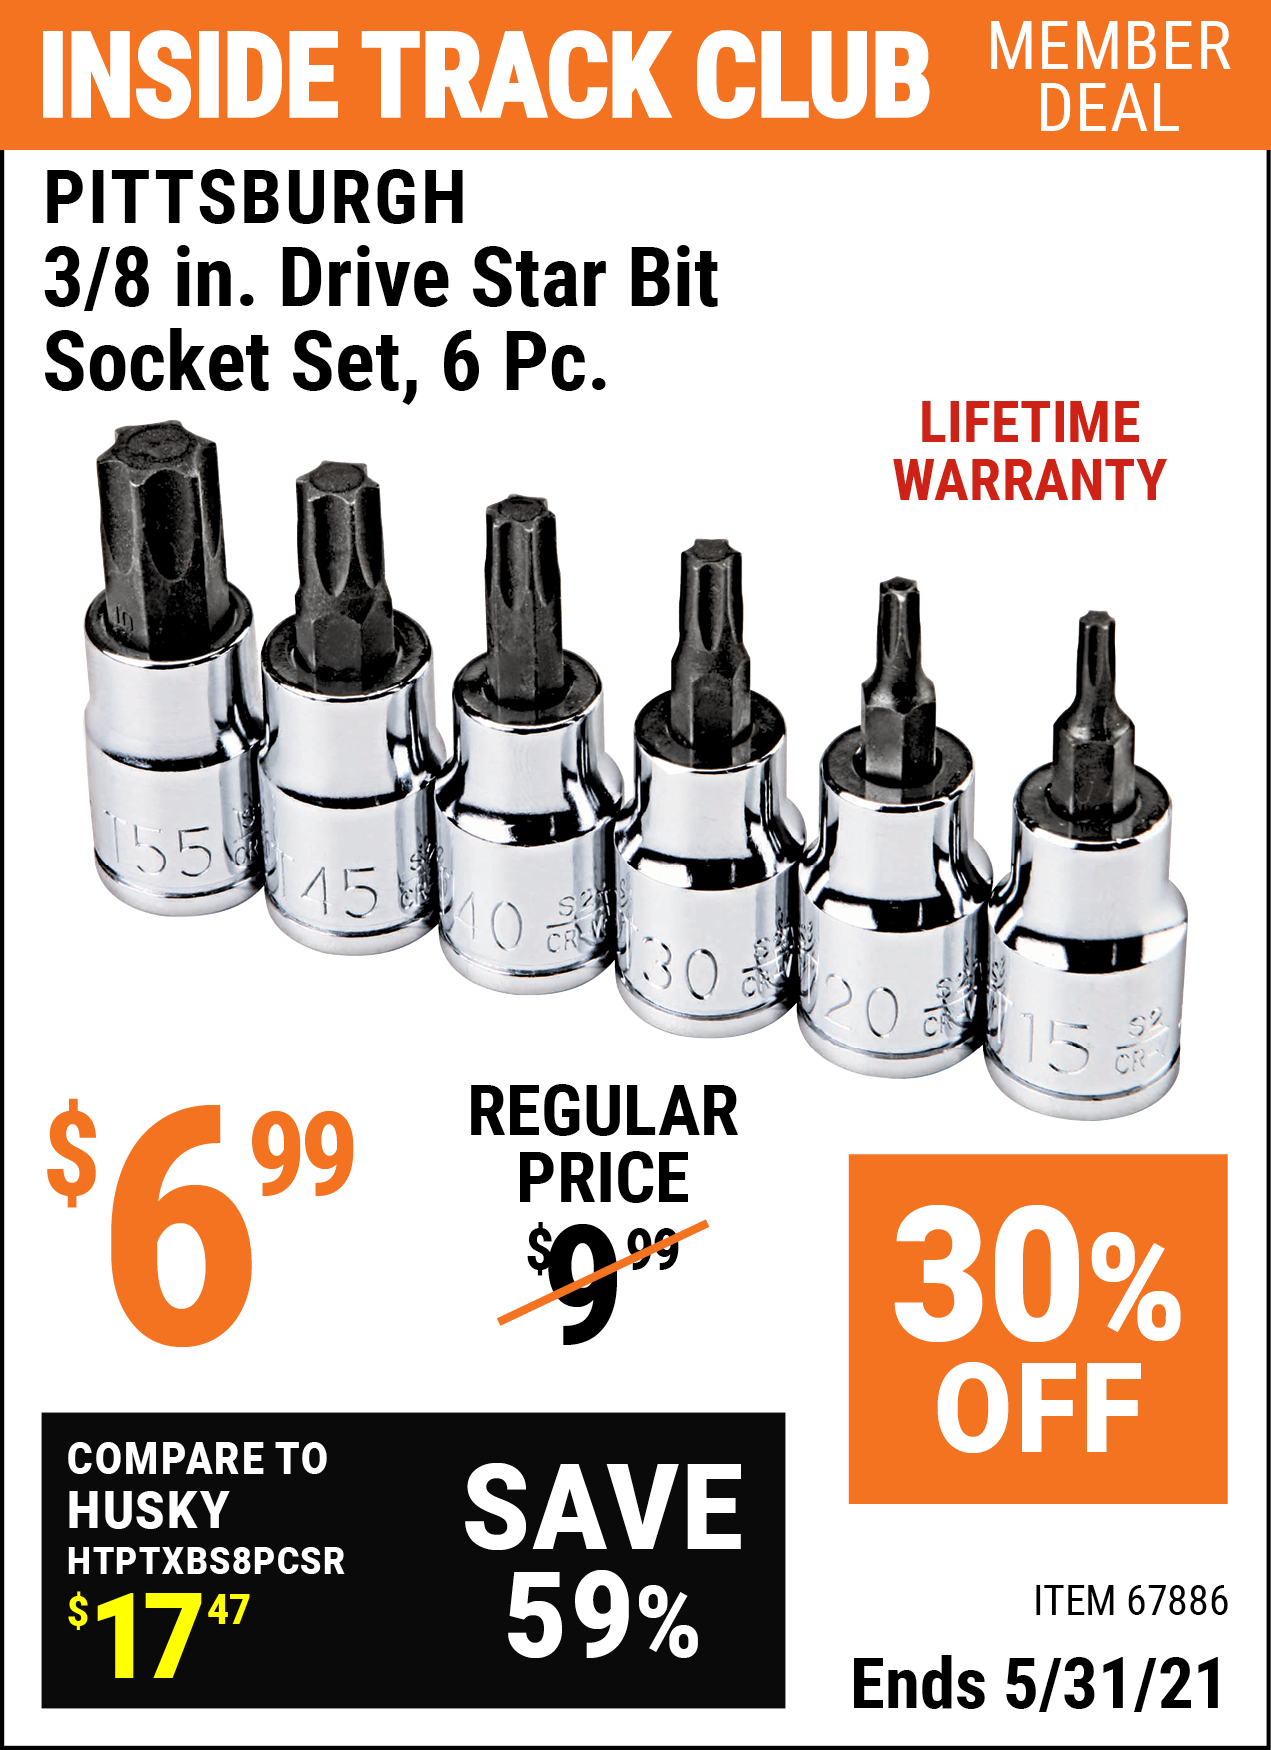 Inside Track Club members can buy the PITTSBURGH 3/8 in. Drive Star Bit Socket Set 6 Pc. (Item 67886) for $6.99, valid through 5/31/2021.